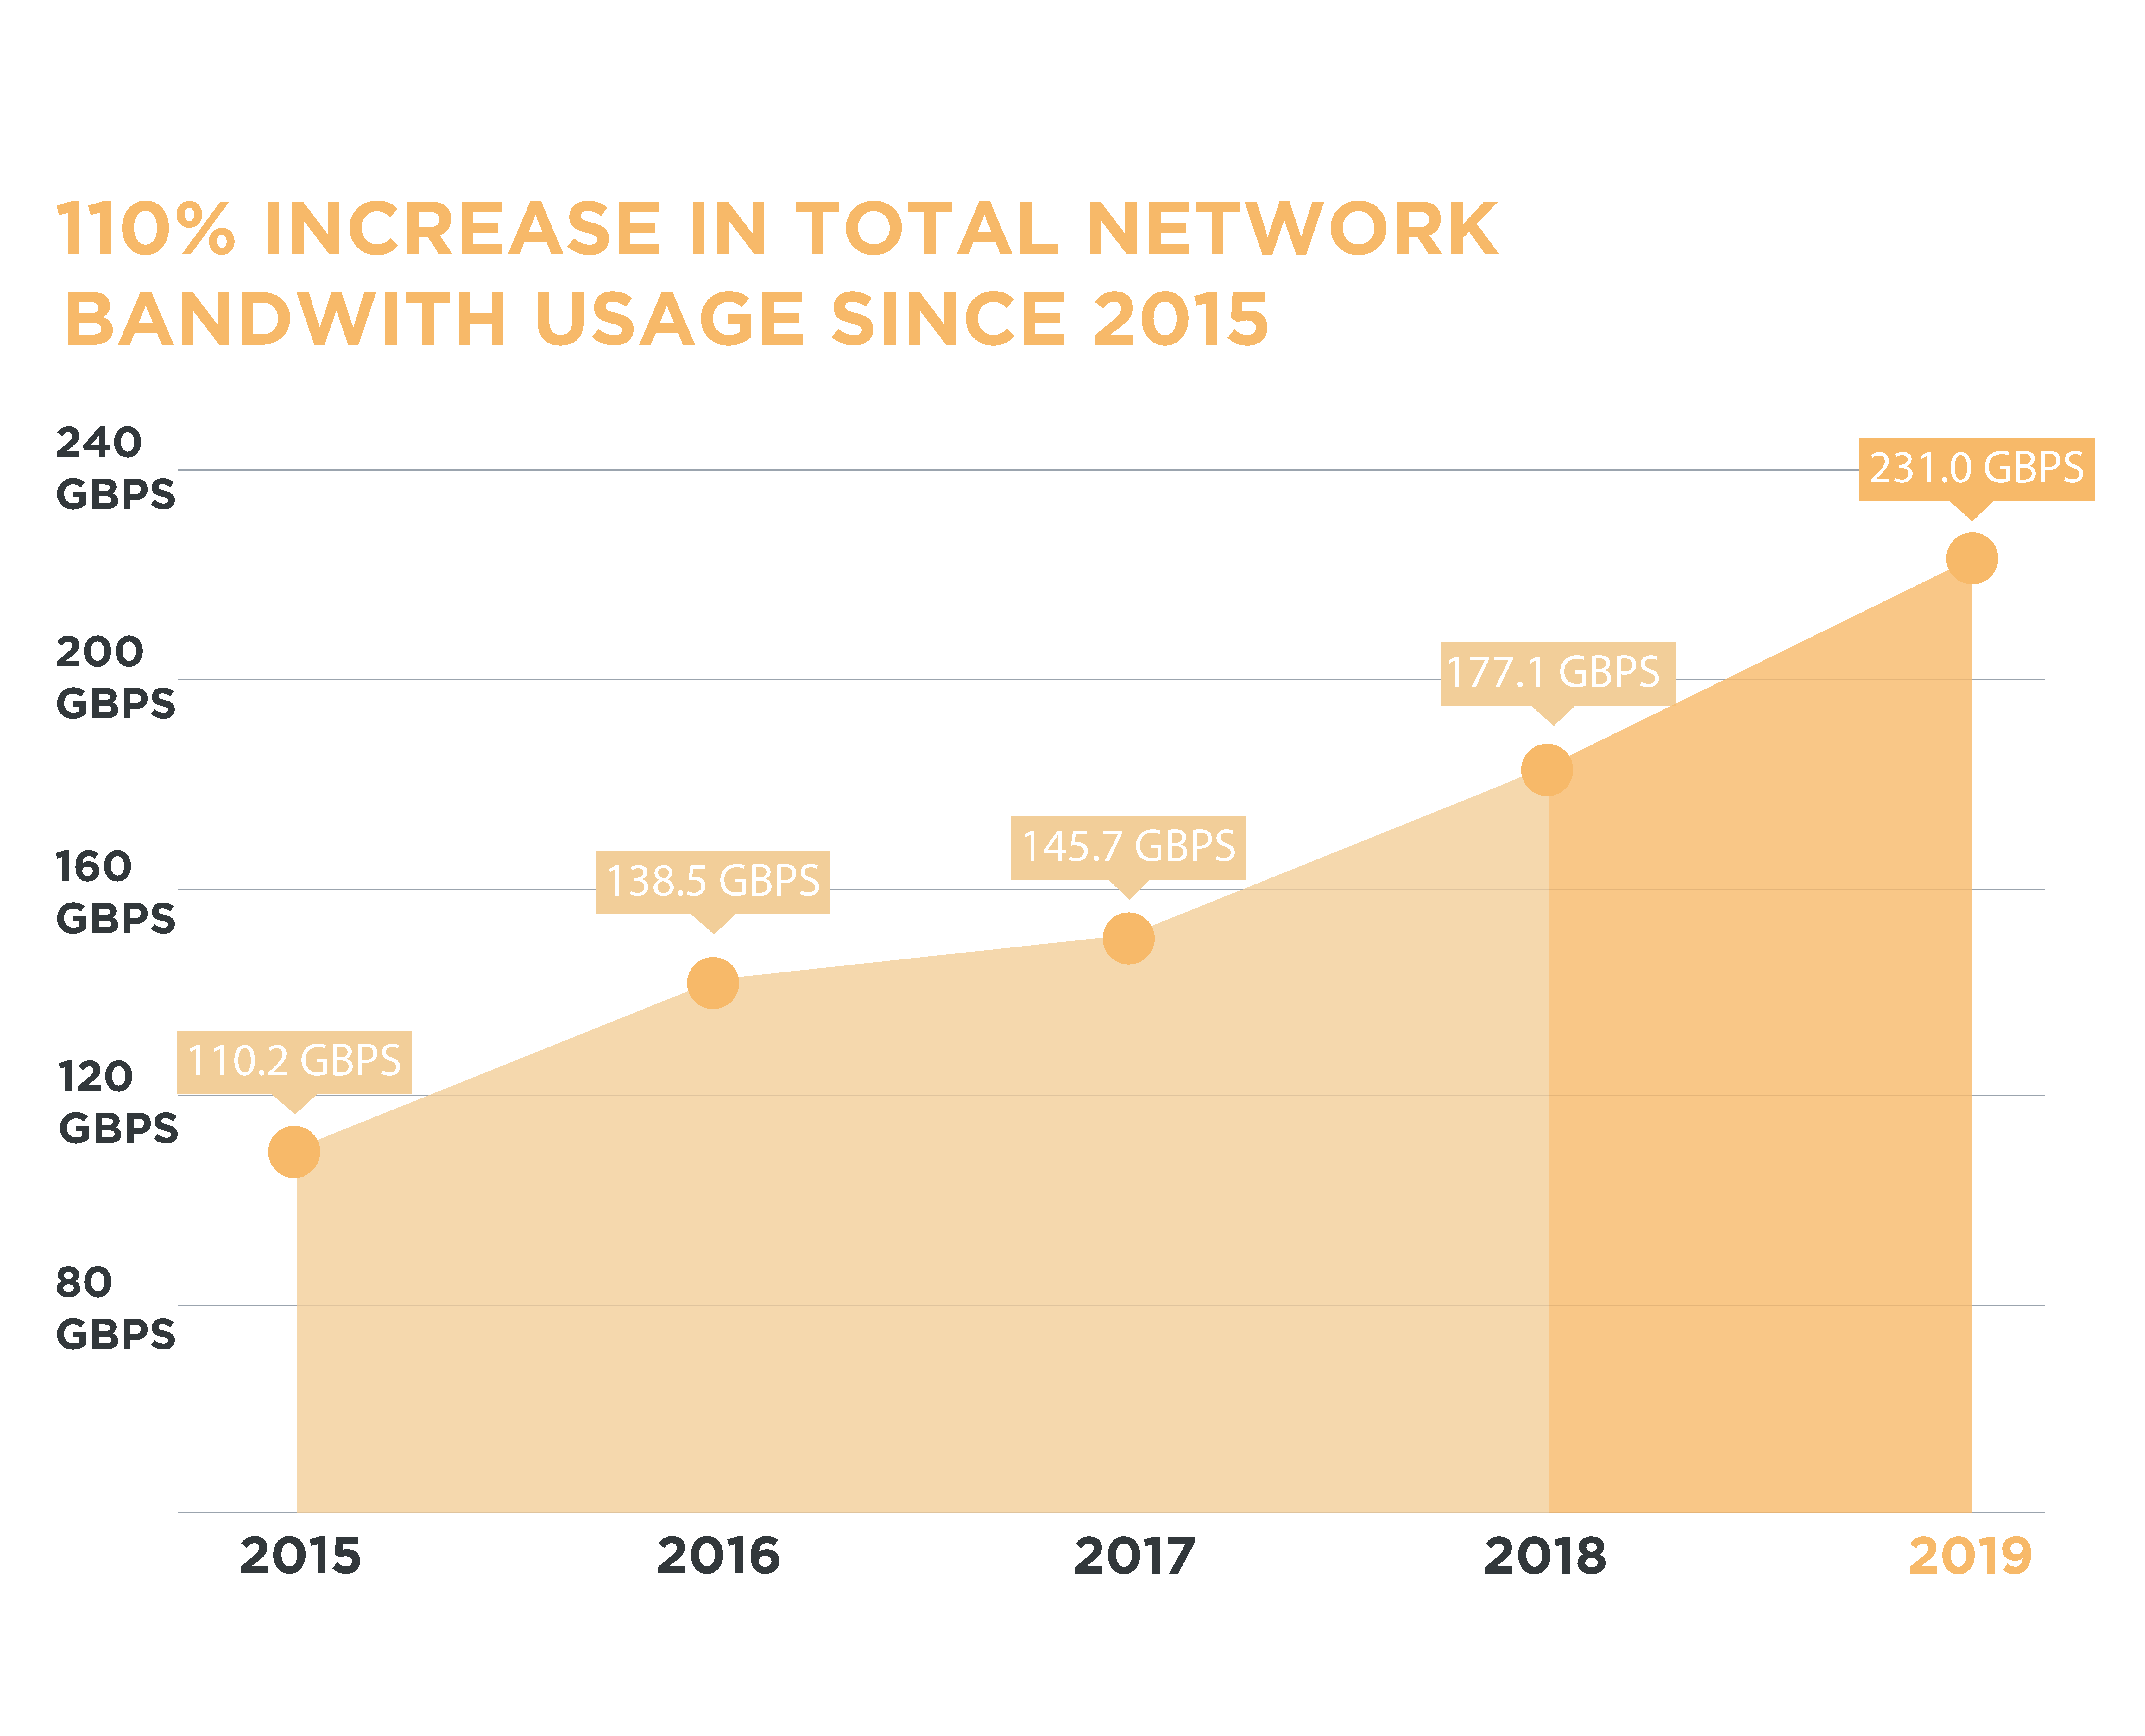 A graph detailing the increase in total network bandwith usage on the ORION network since 2015